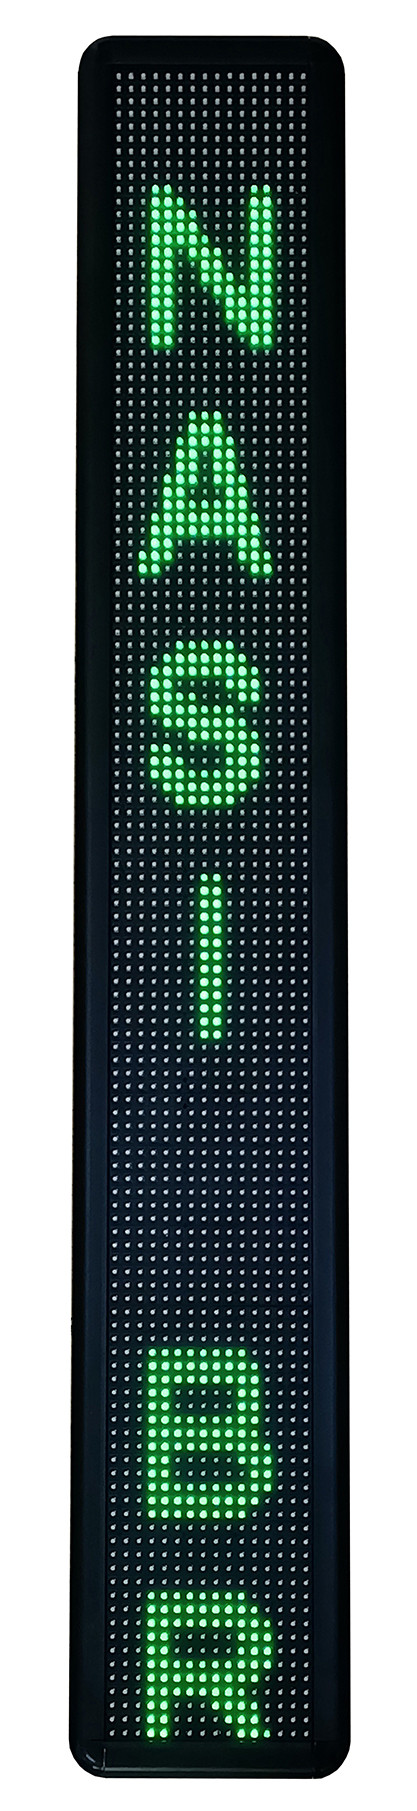 They Move on Tracks of Never-Ending Light, 2021, LED signboard in acrylic casing, 100 x 16 x 6cm